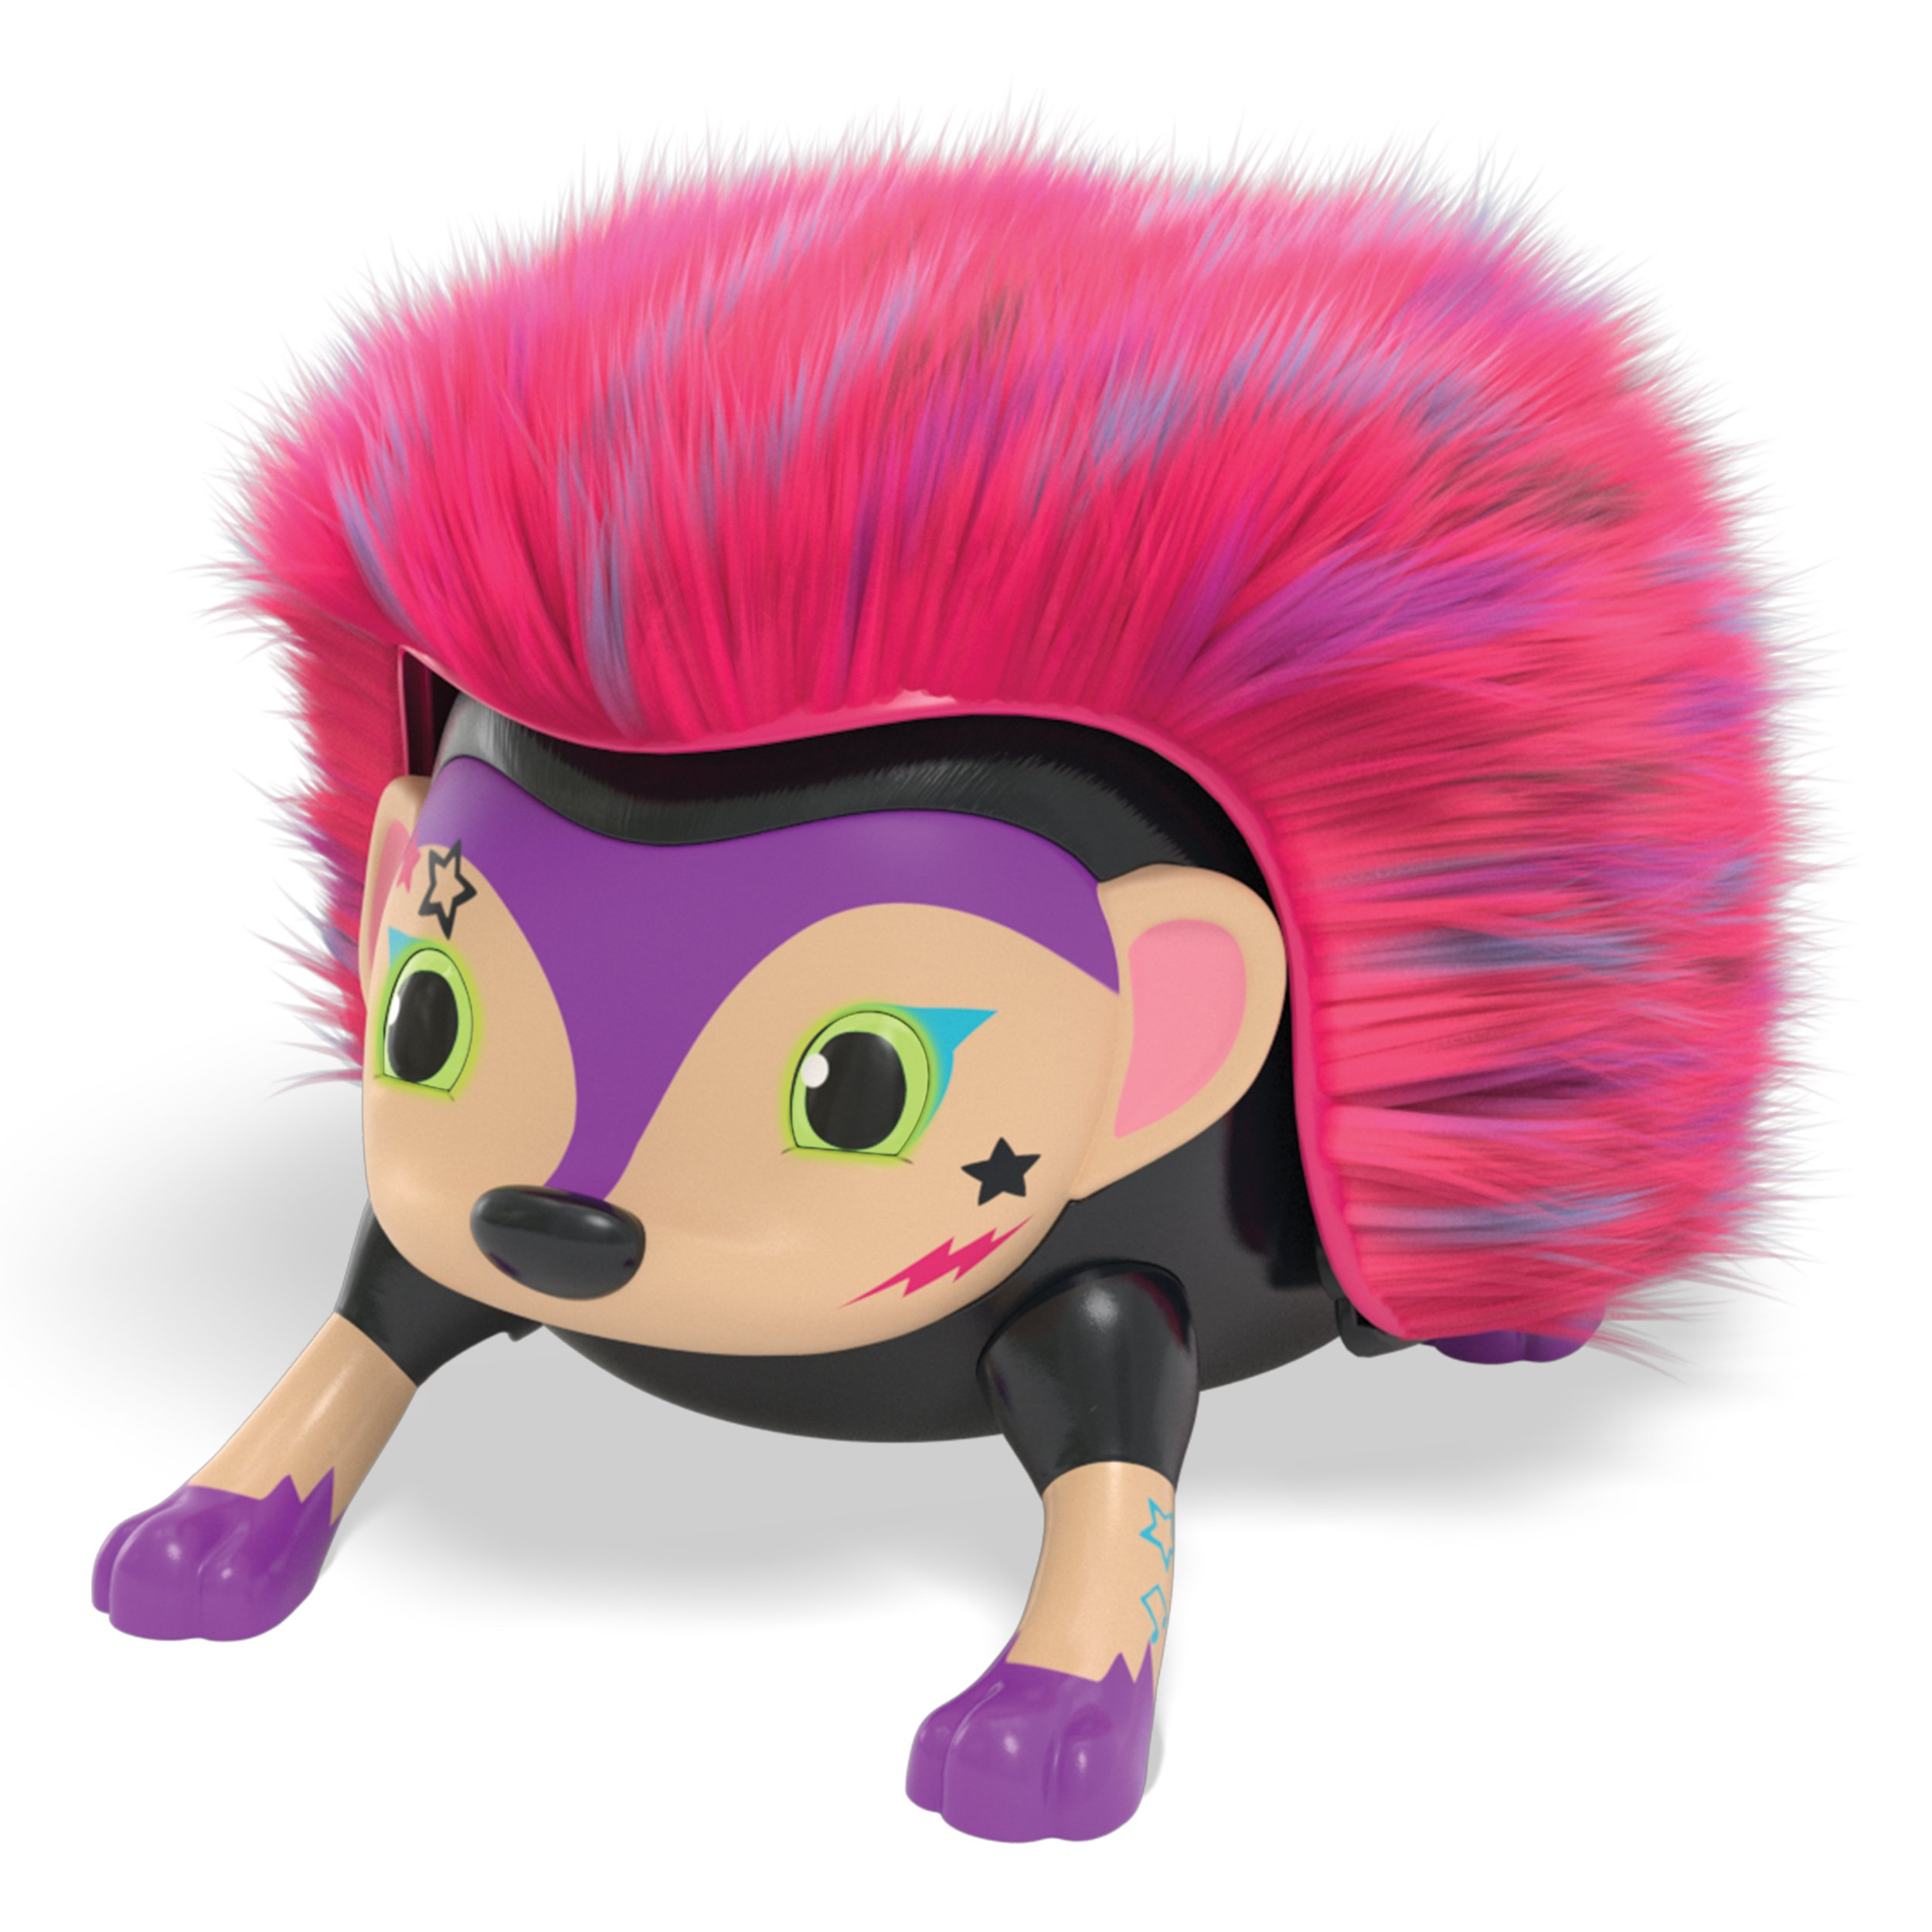 Zoomer Hedgiez,Tumbles, Interactive Hedgehog with Lights, Sounds and Sensors, by Spin Master by Zoomer (Image #2)